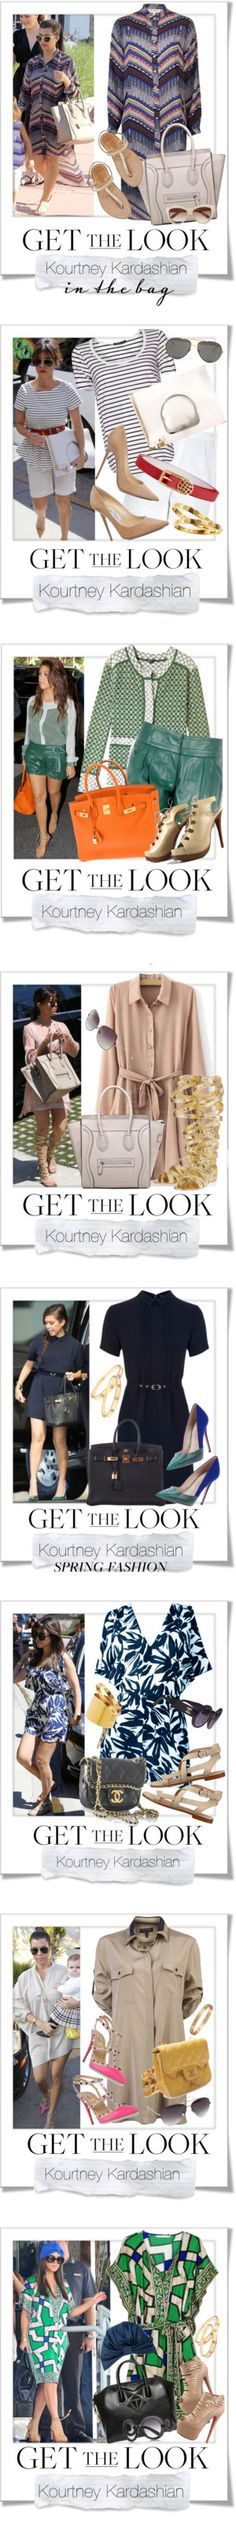 """Kourtney Kardashian"" by renatademarchi ❤ liked on Polyvore"